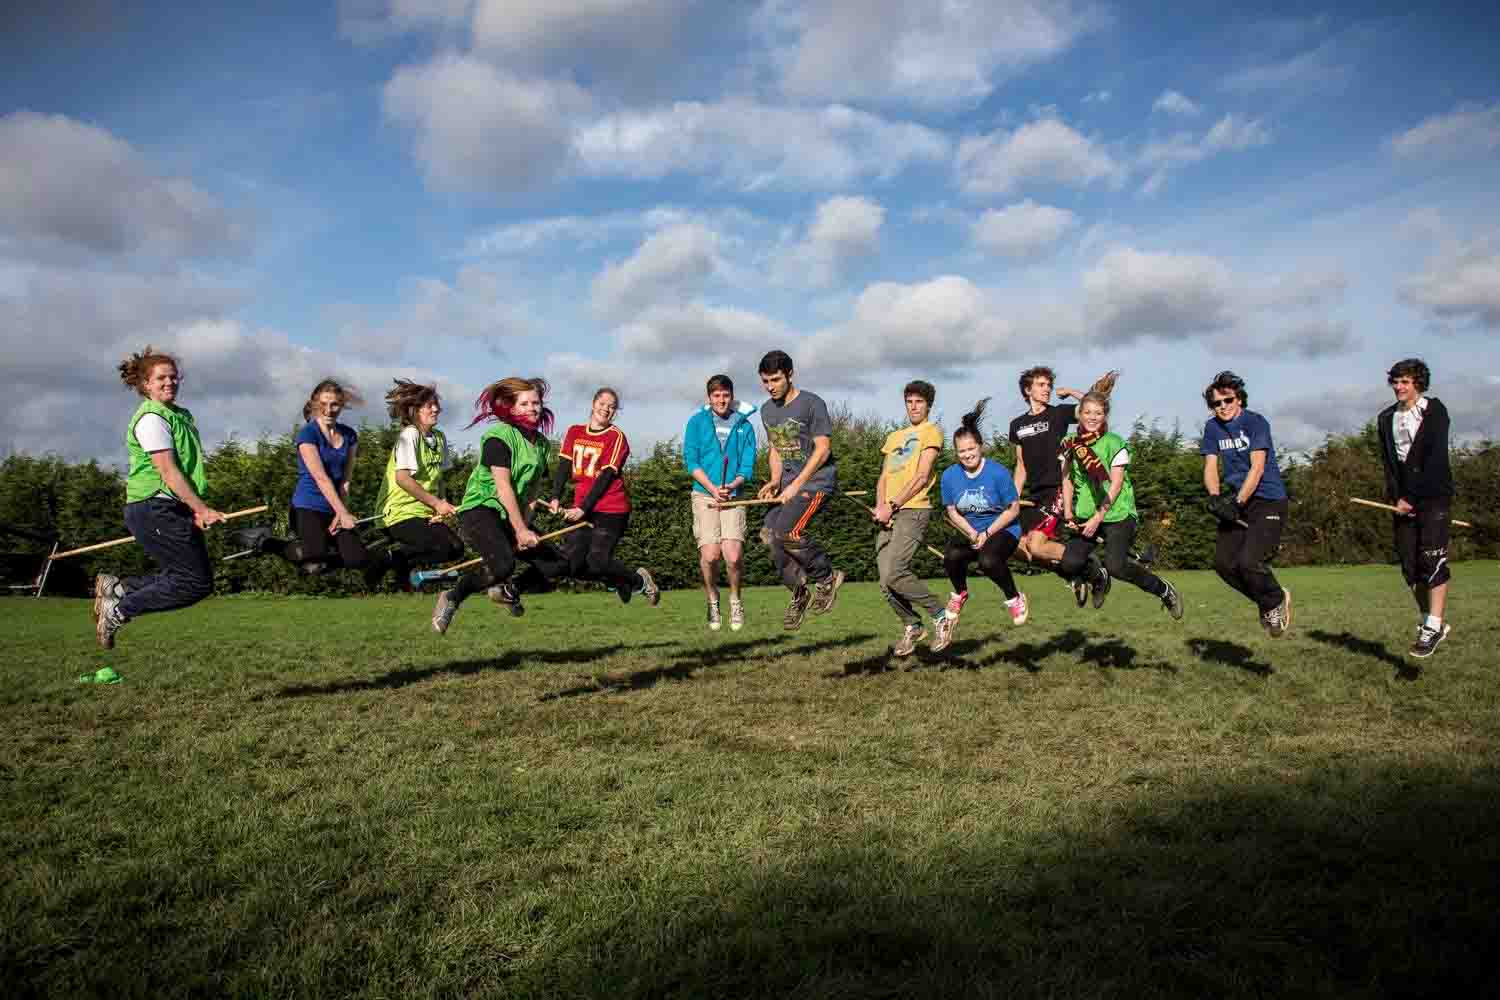 Consell d'Enginyeria UAB | UAB Quidditch Club